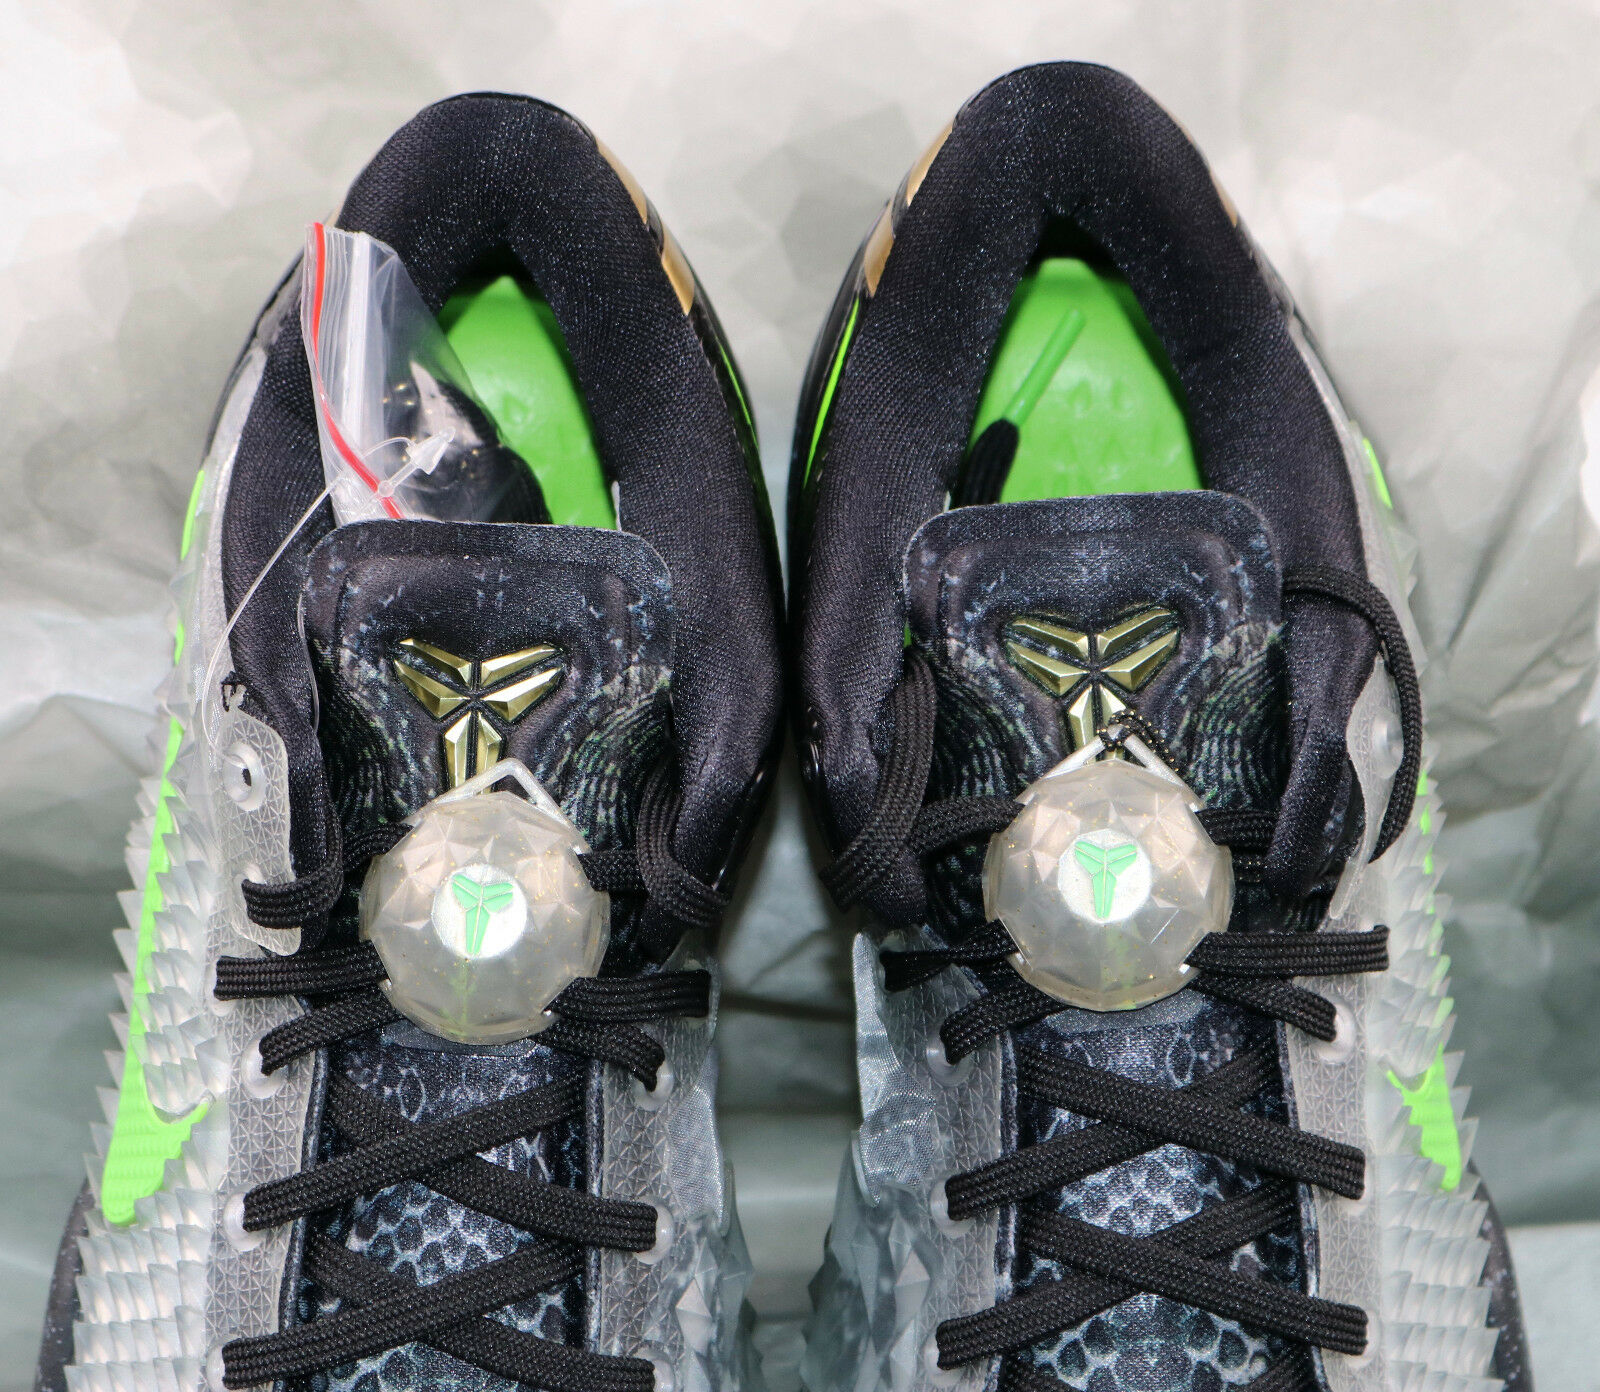 ebc117c2dab4 Nike Kobe 8 System SS Sz 10 Christmas Edition Black Electric Green Gold  Grinch for sale online